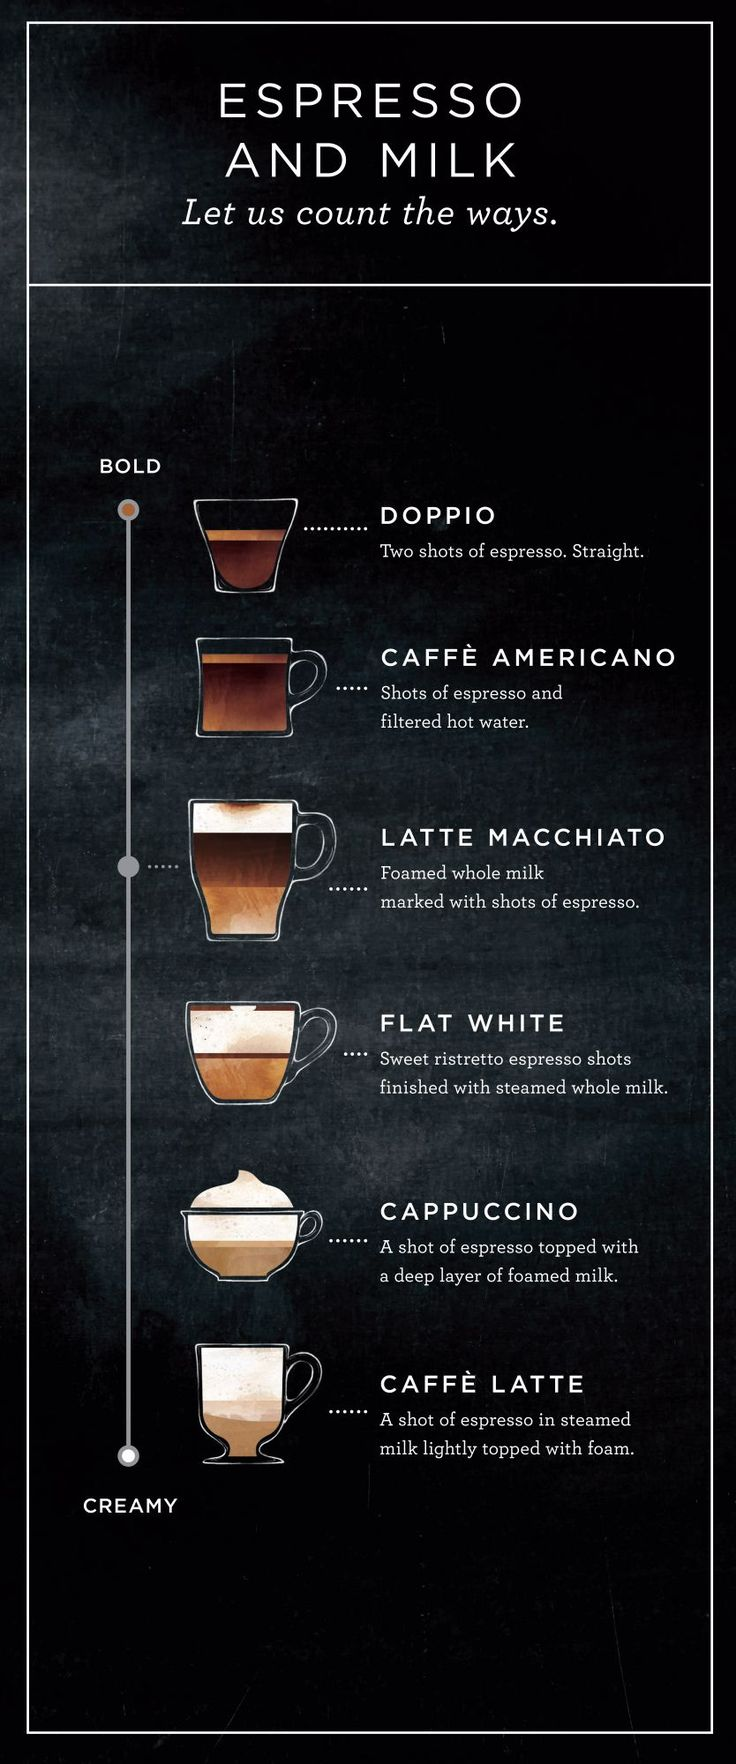 Six boldly different drinks made from the same simple ingredients—espresso and milk.